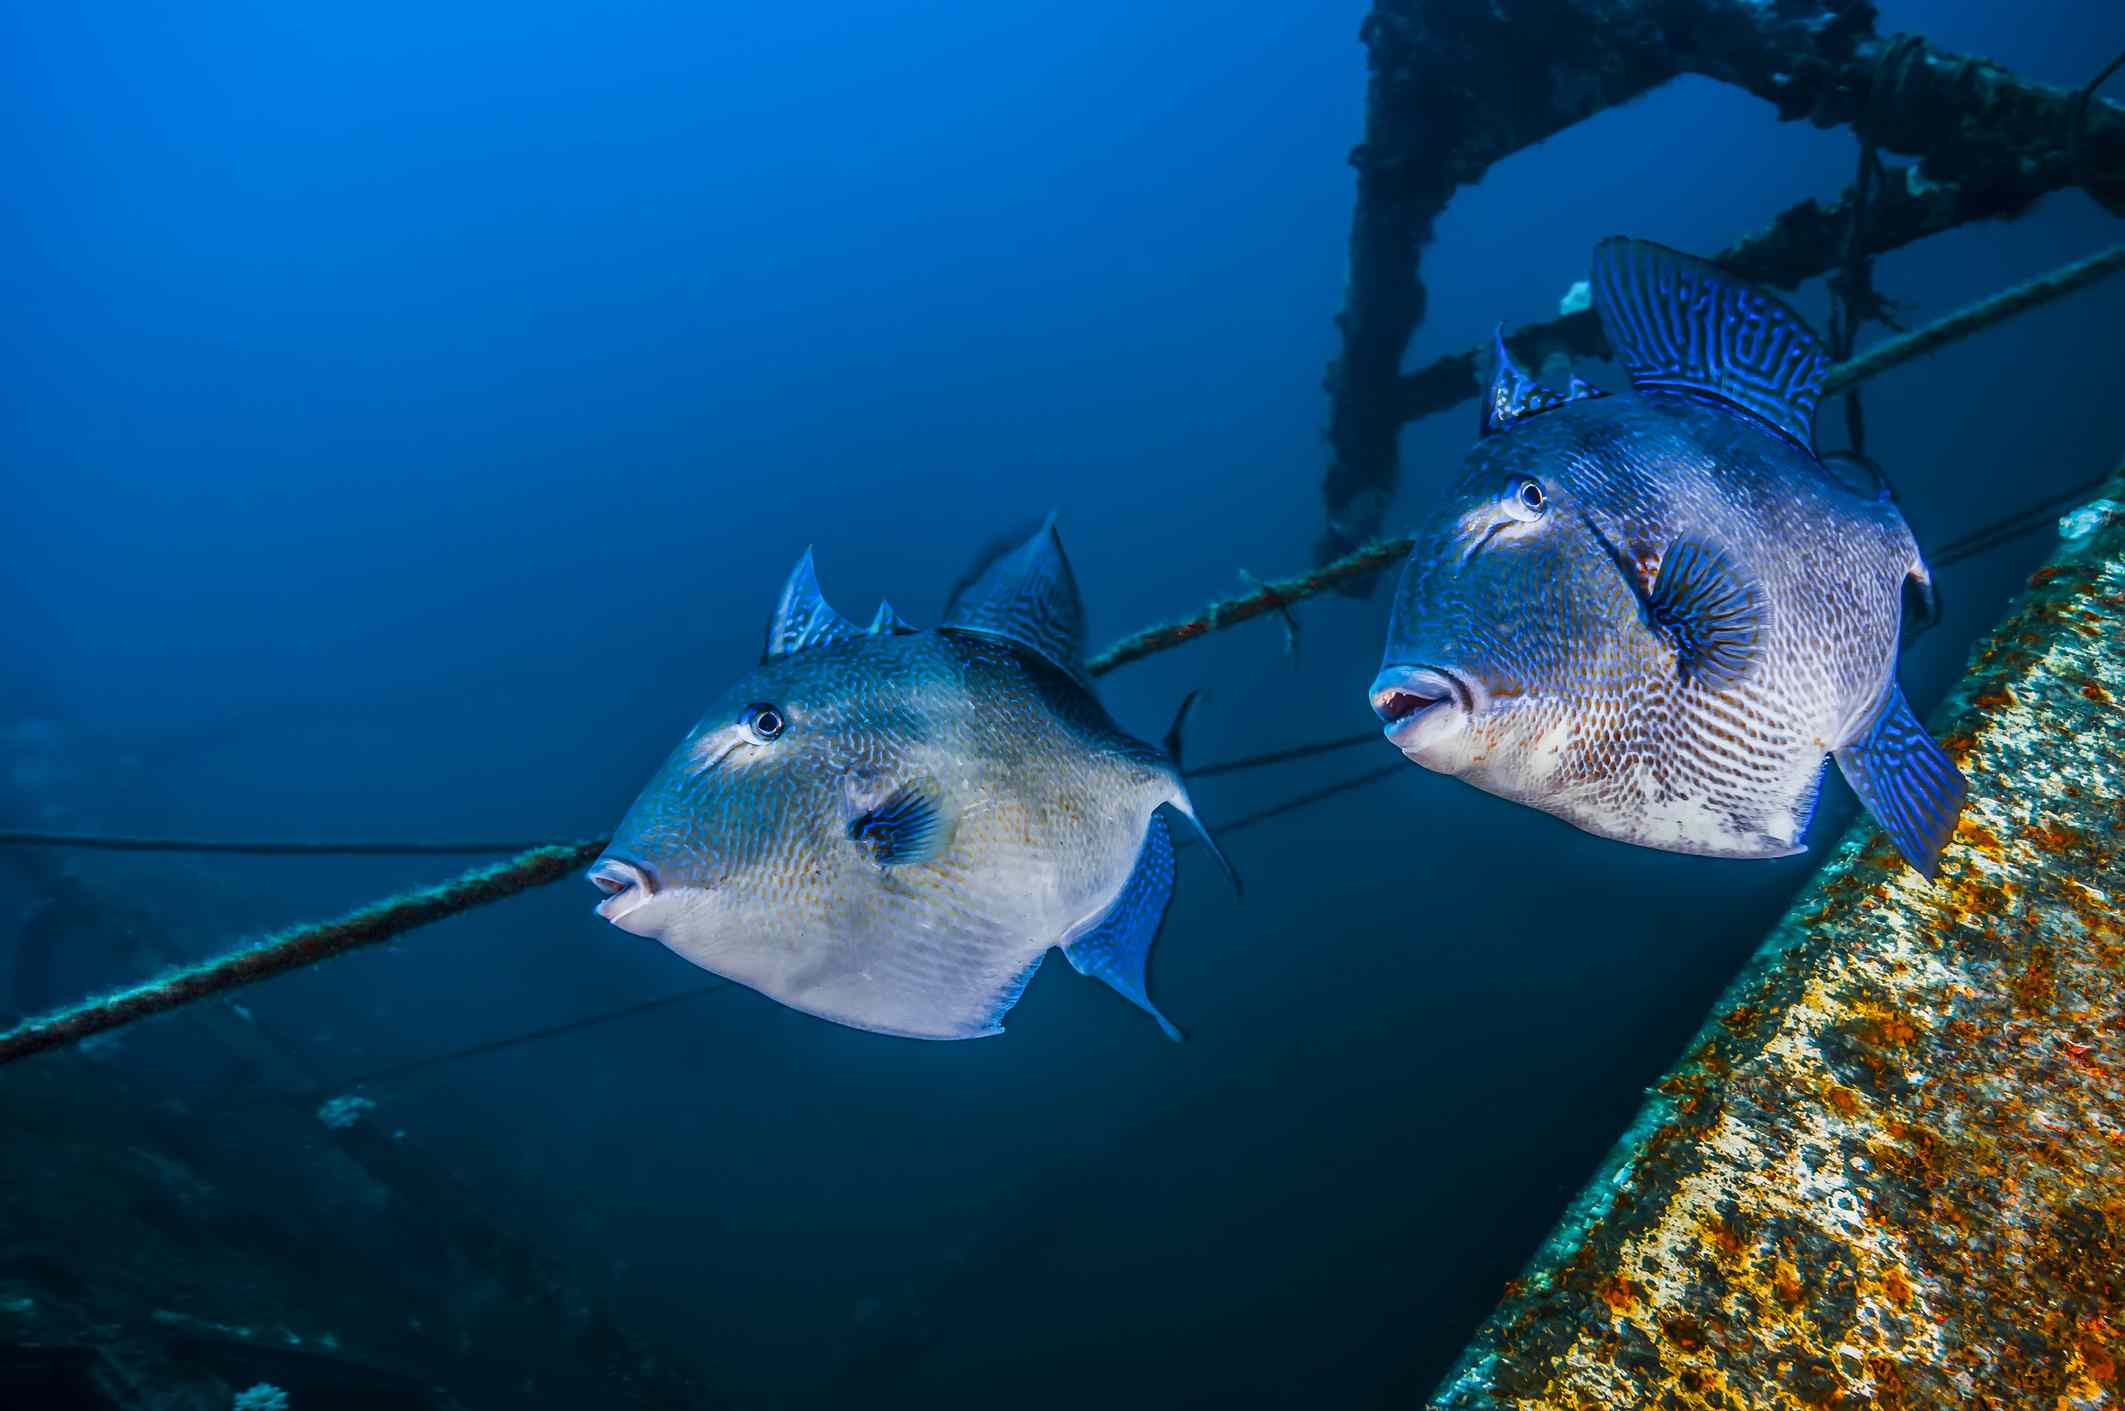 Triggerfish swimming amongst the USTS Texas Clipper wreck